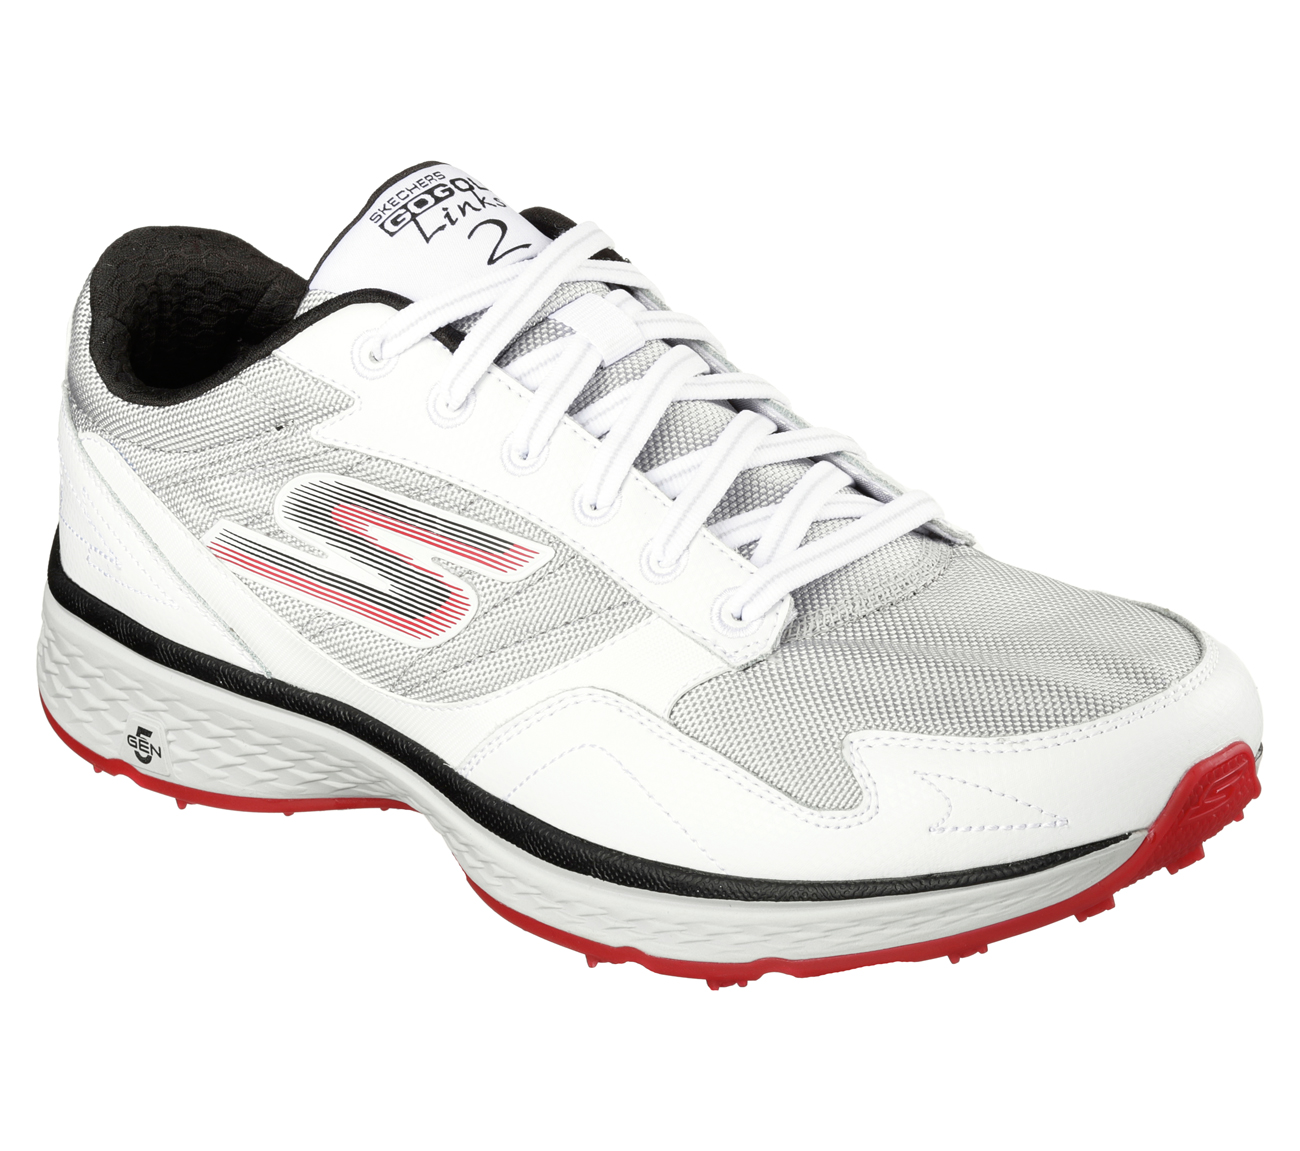 Sketchers Men's Go Golf Fairway Golf Shoe White